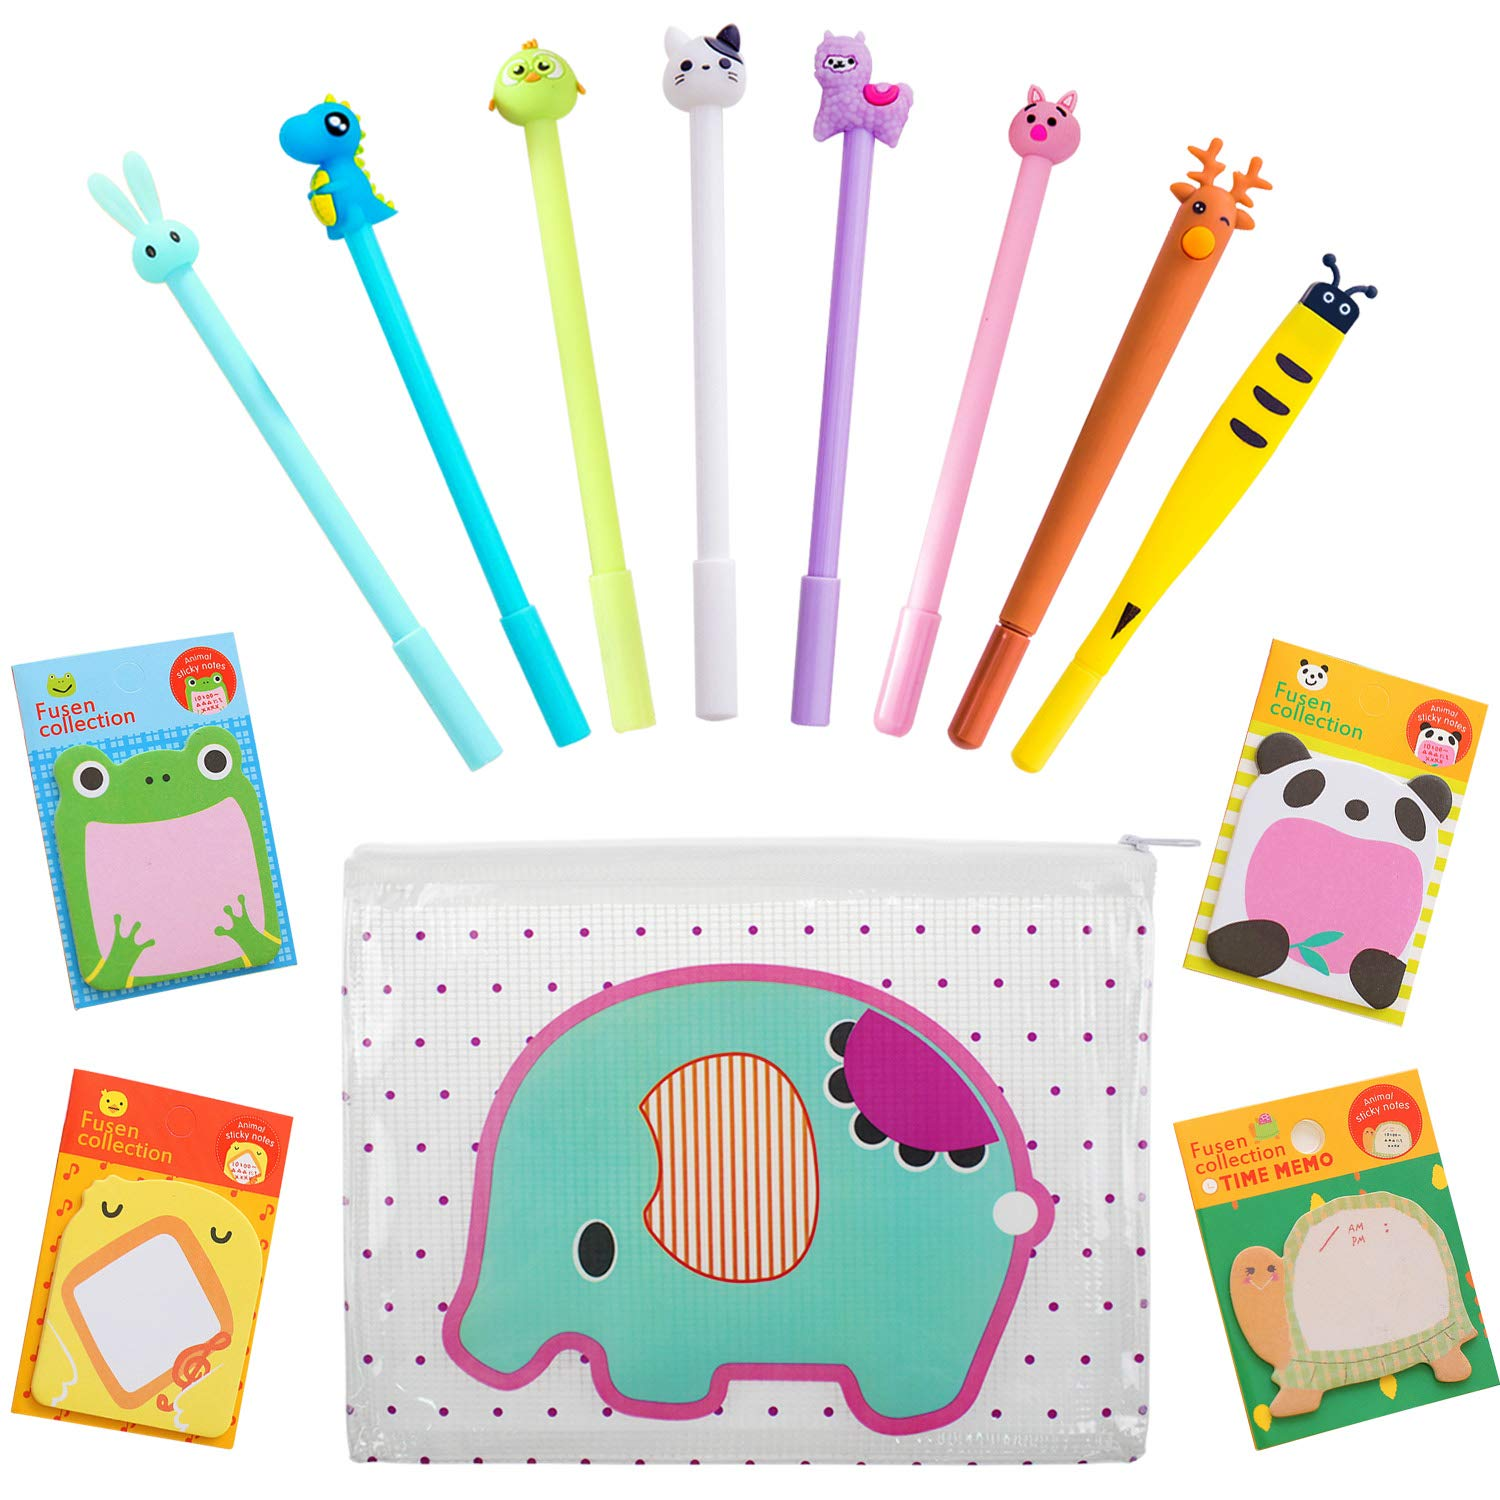 Animal with writing pen clipart banner black and white library Kids Animal Pens Cute School Gift,8 pcs Black Ink Gel Pen Ballpoint Pens  Cute Pencil Case Suit for Children School Stationary Writing Set banner black and white library